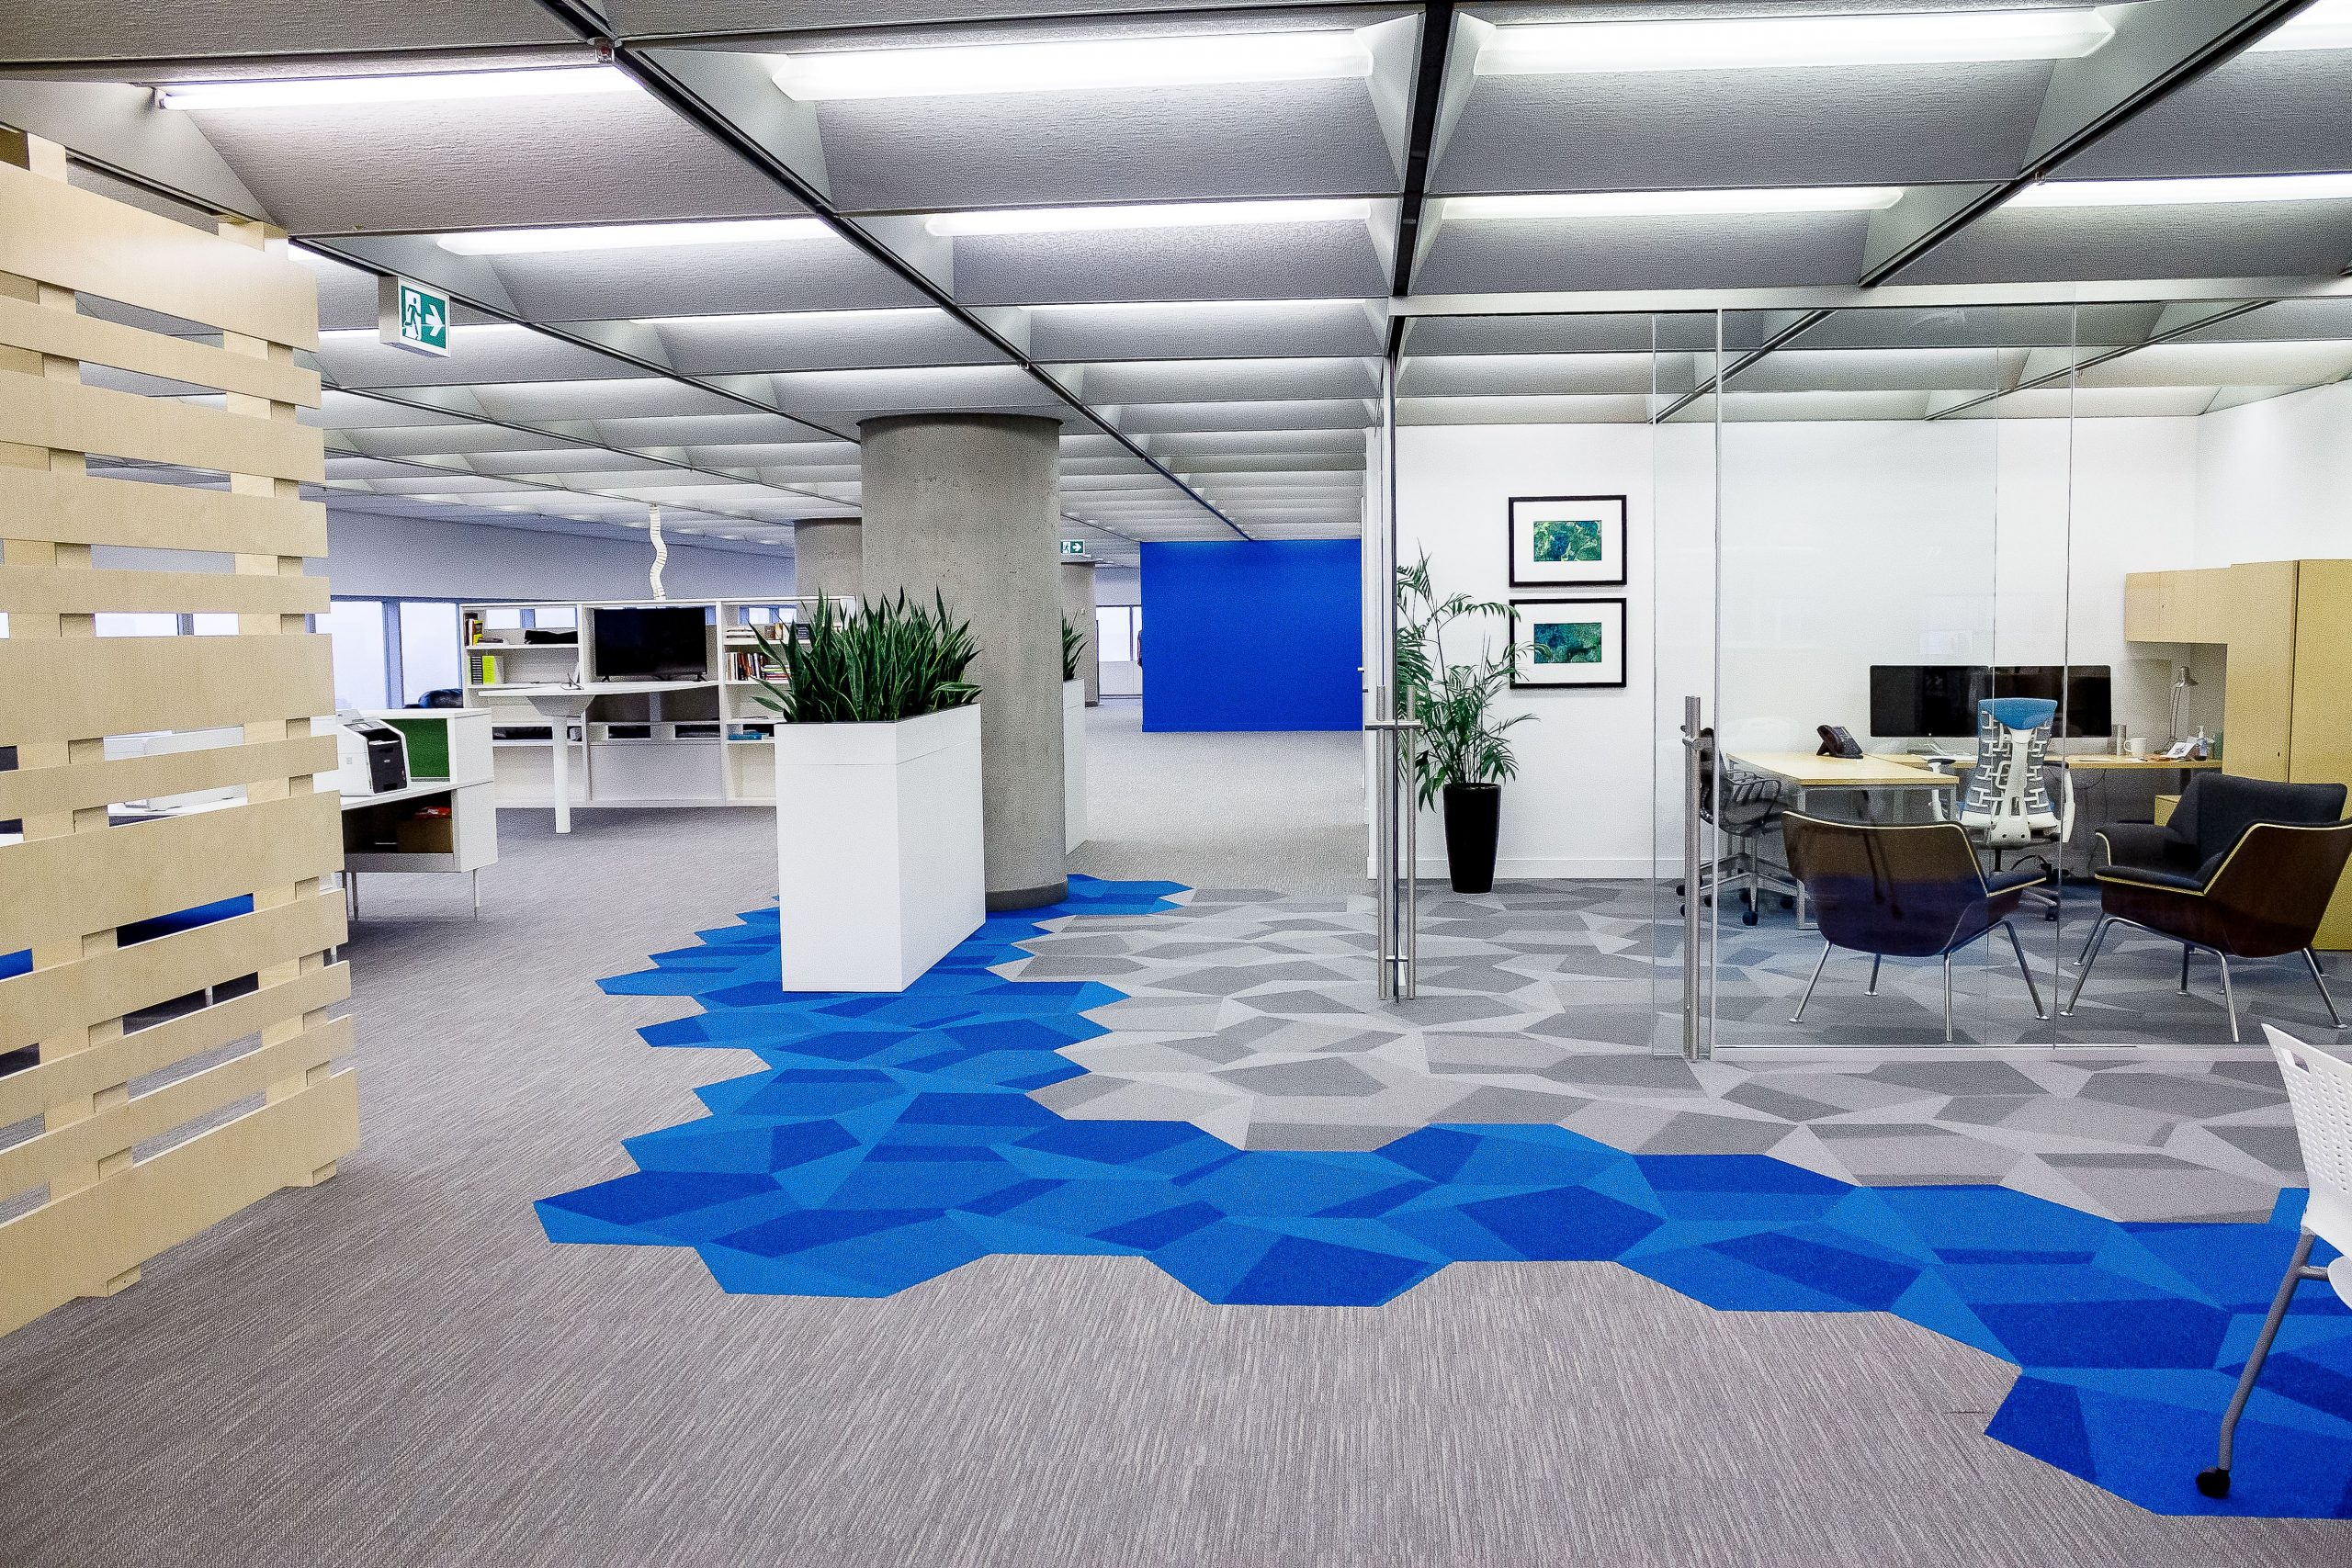 A shot of Voices's modern office, showing some greenery, glass office walls, and minimally patterned flooring.